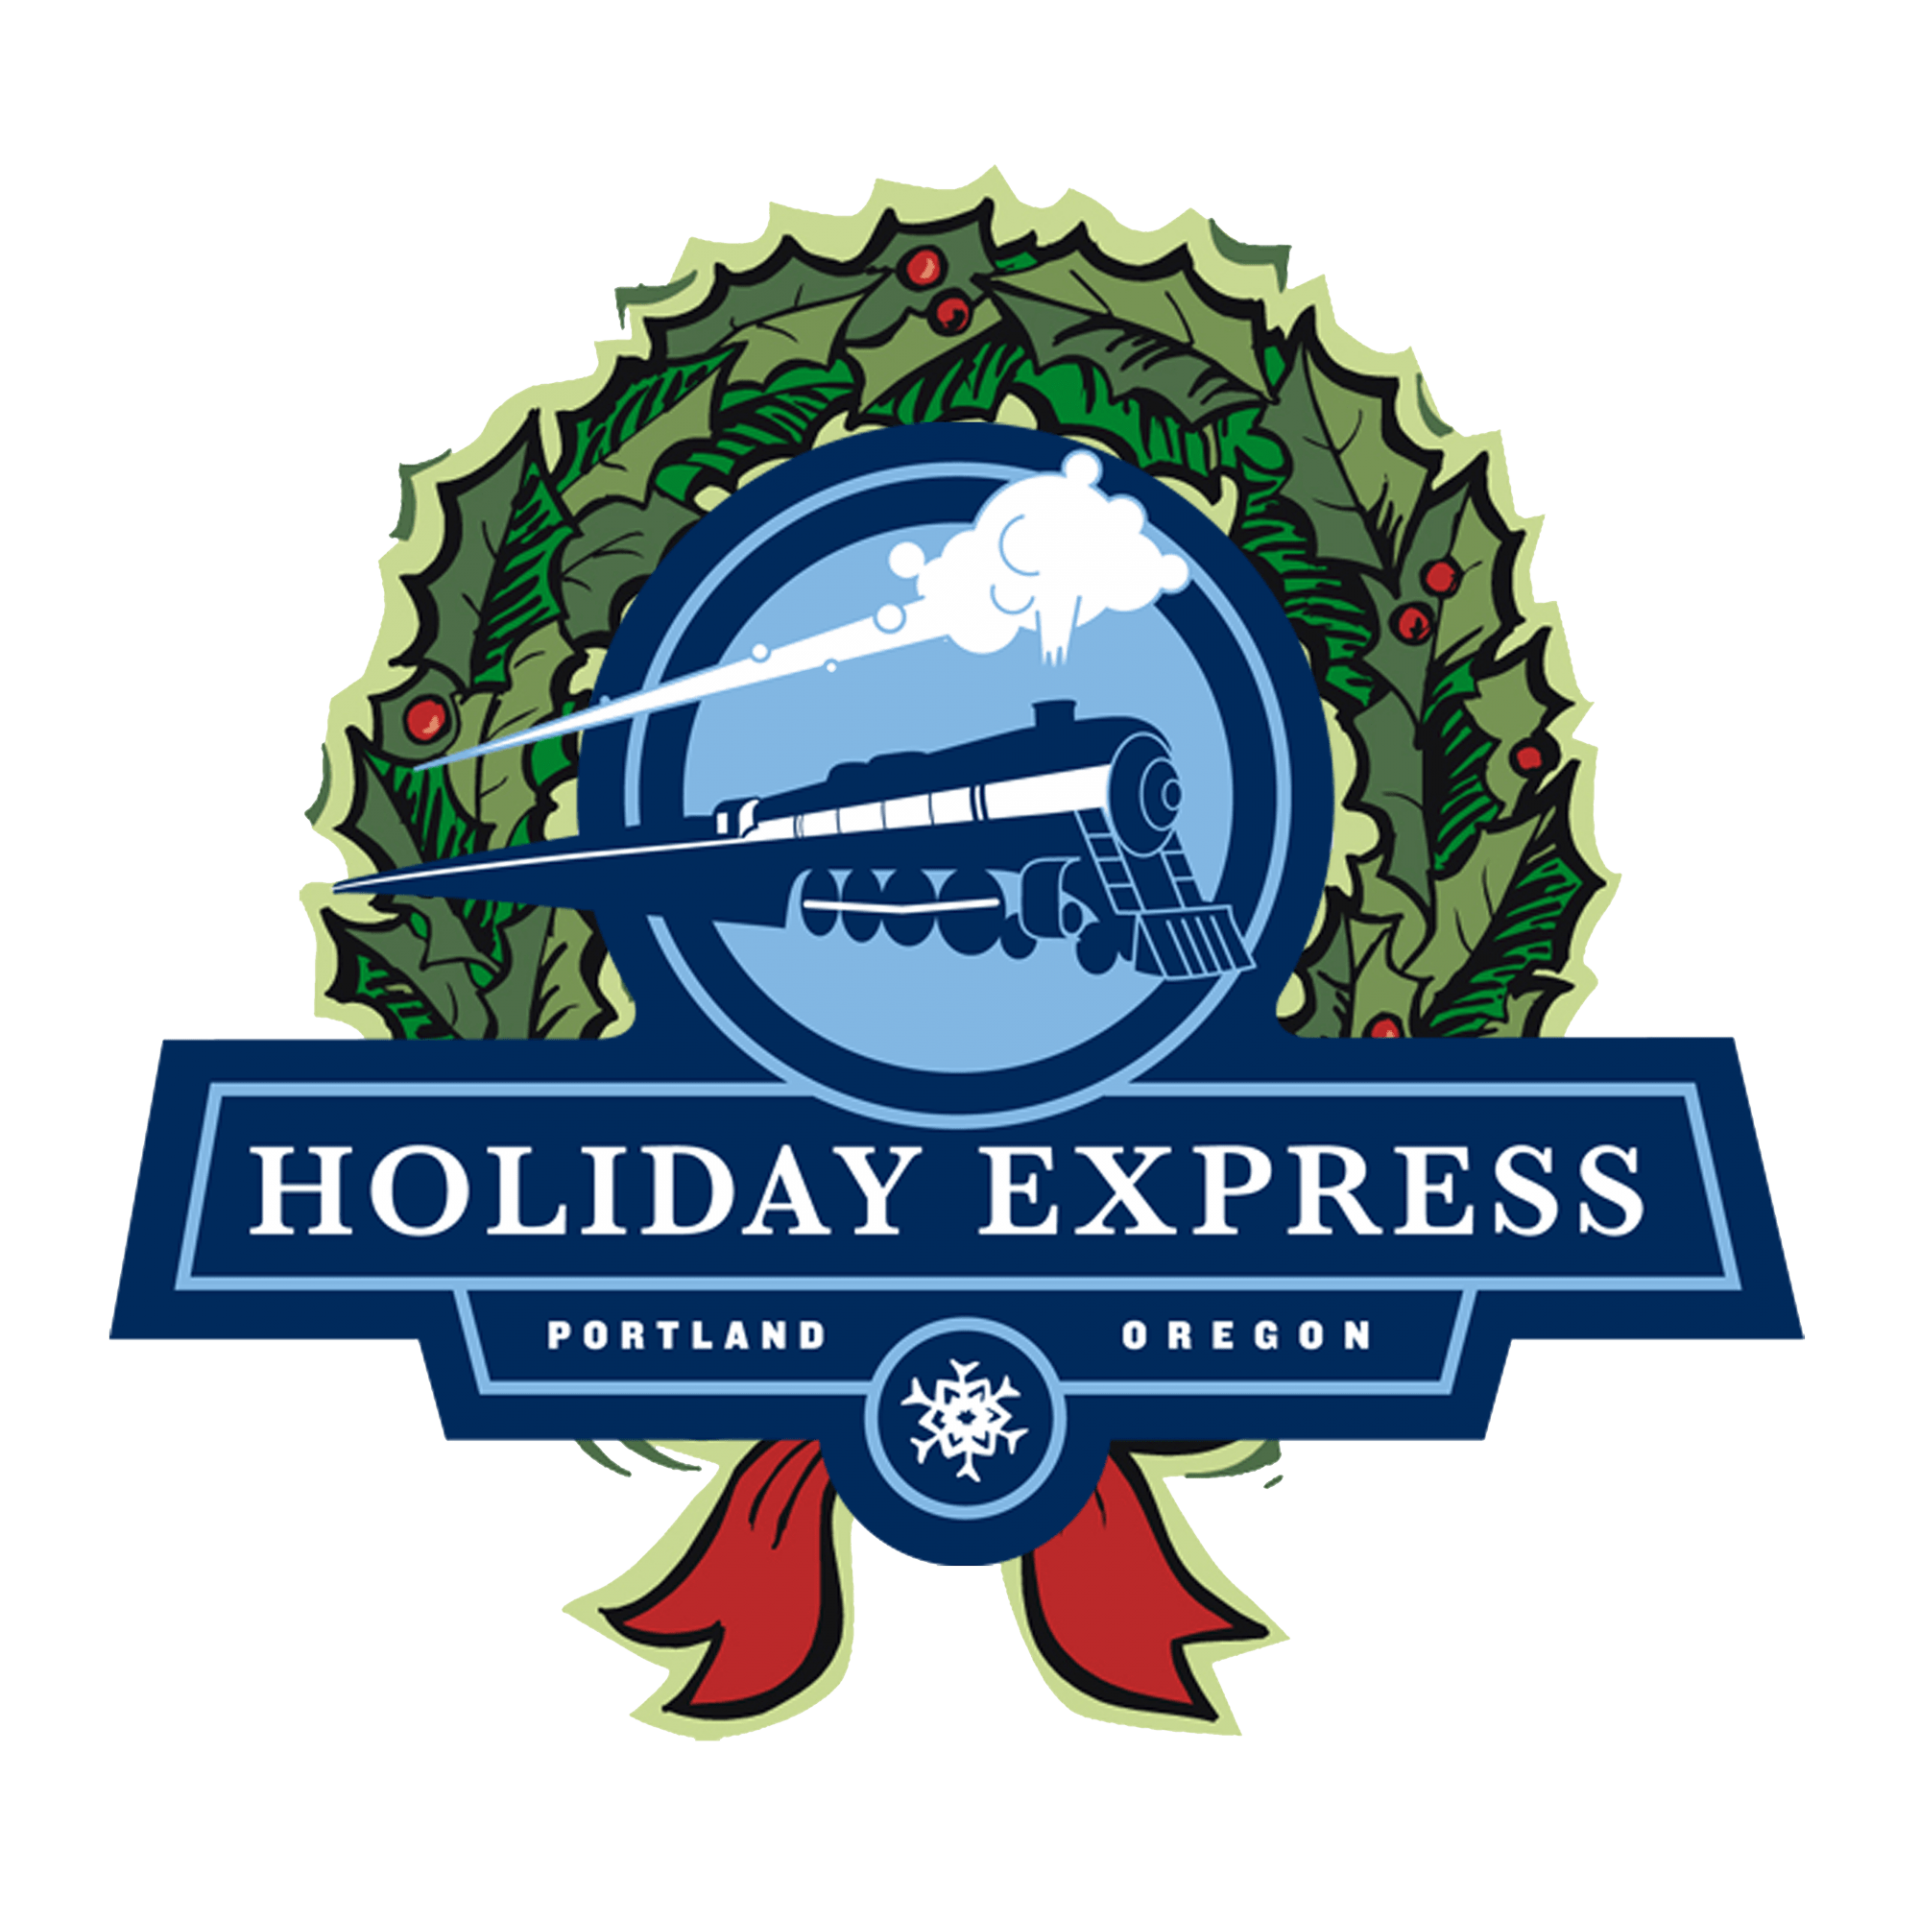 The Holiday Express in Portland Oregon logo